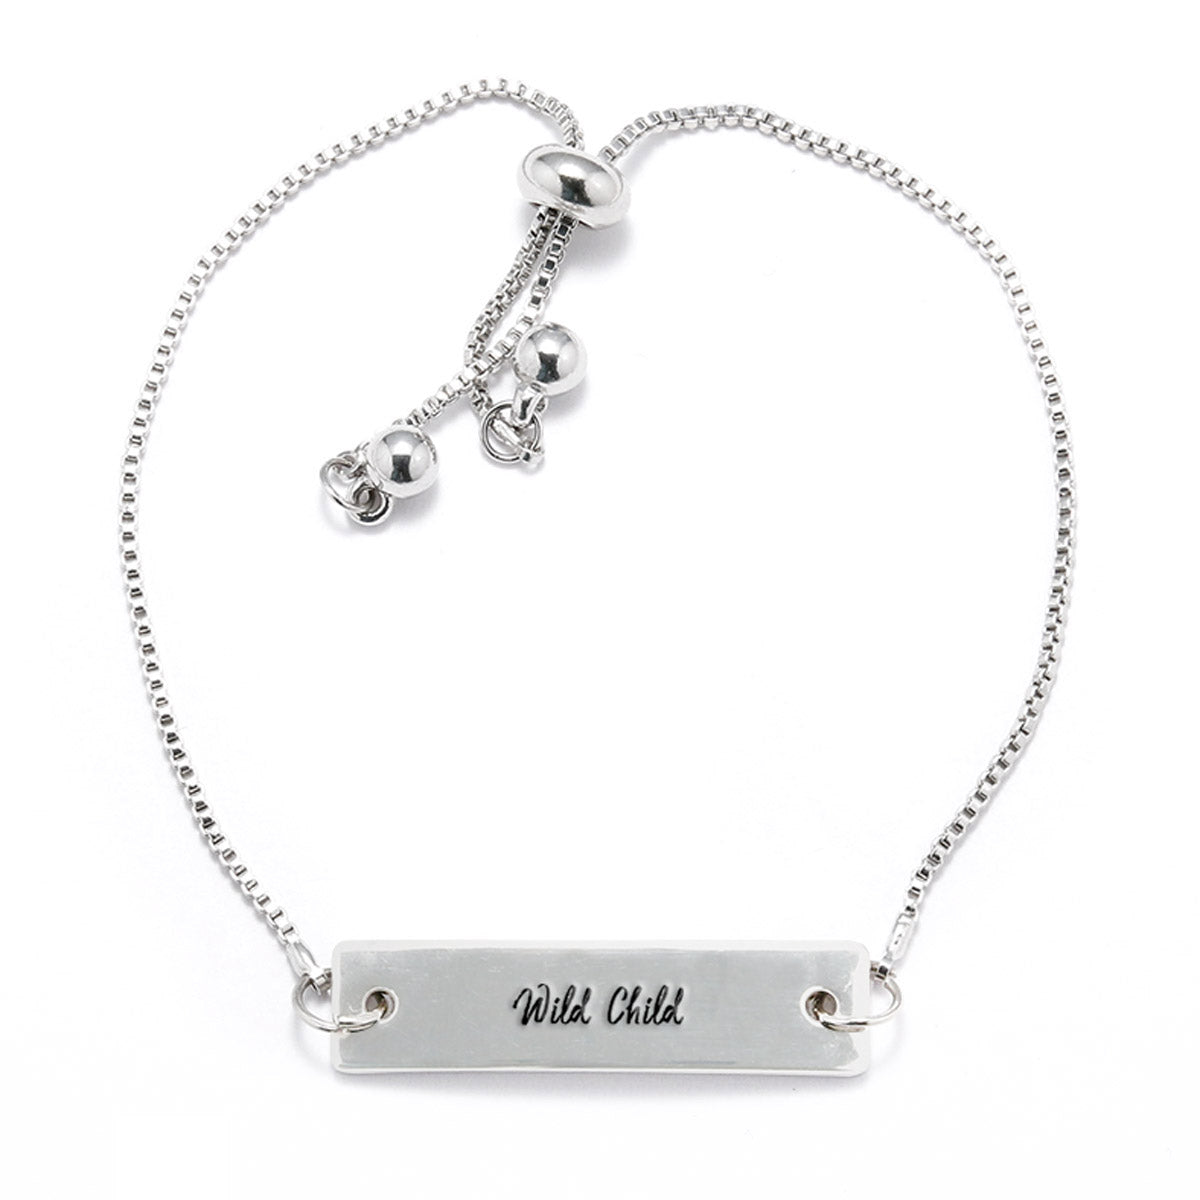 Wild Child Silver Bar Adjustable Bracelet - pipercleo.com